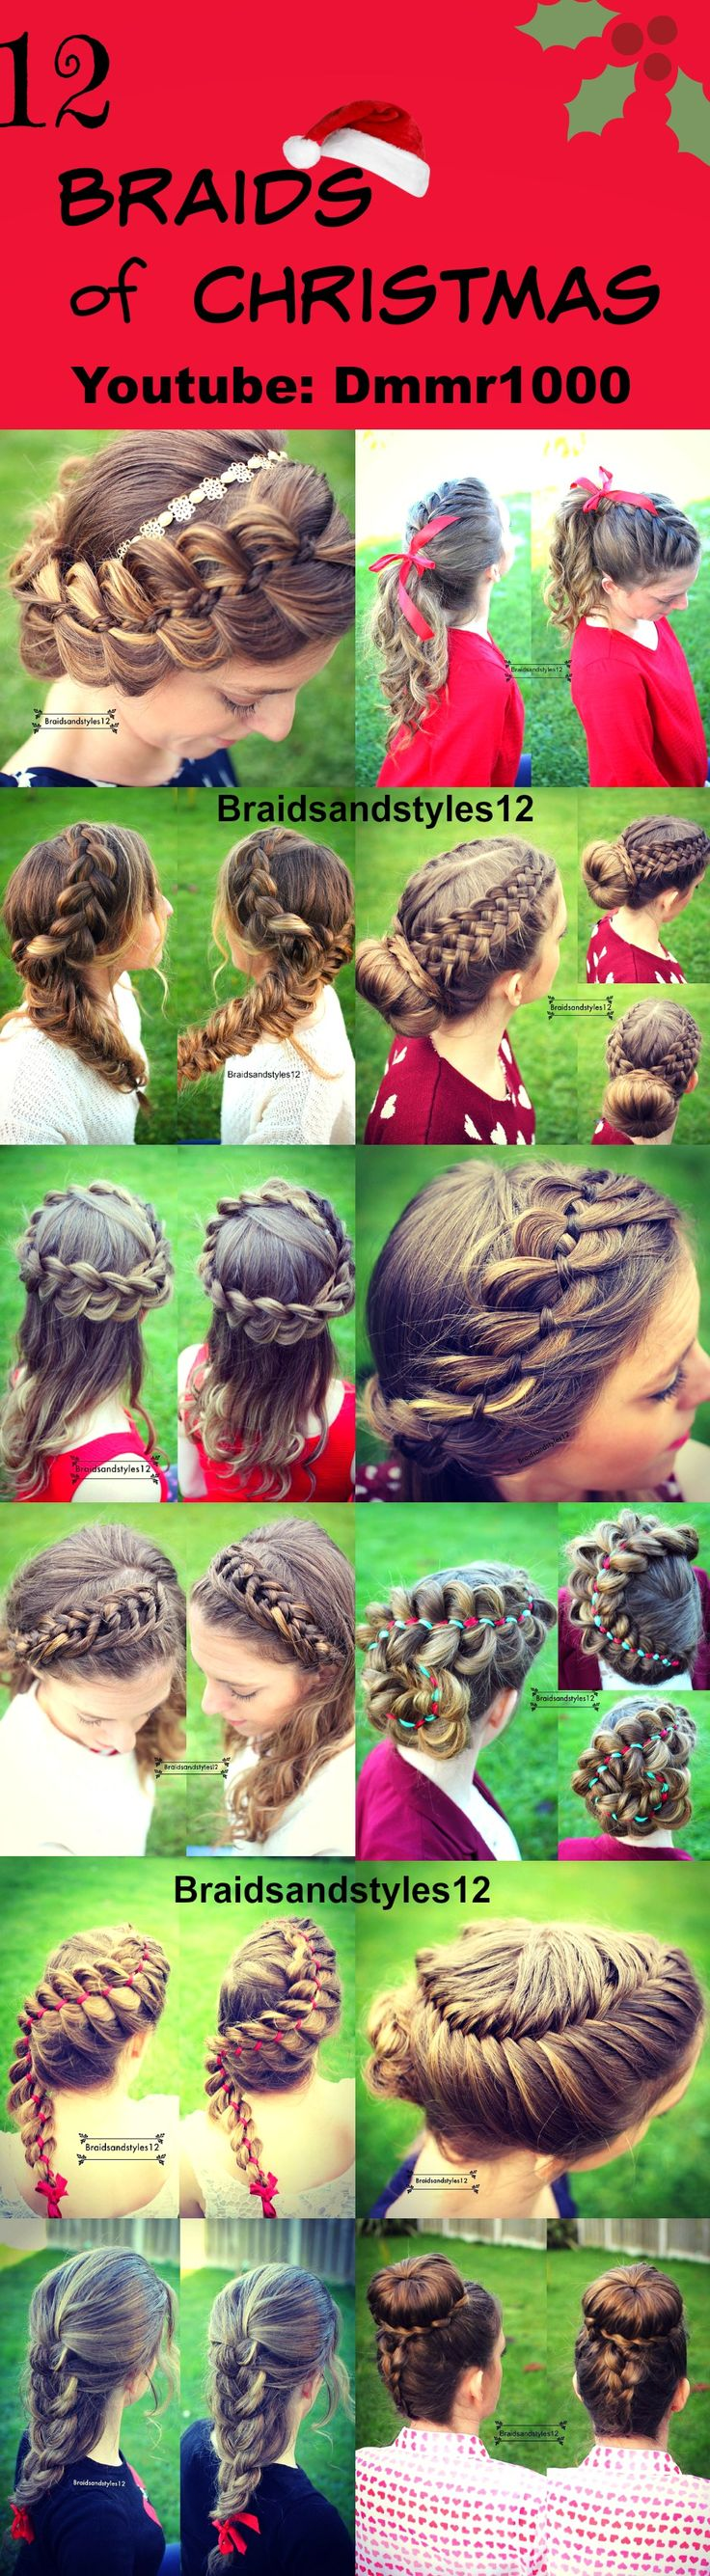 12 festive Christmas Hairstyles and Braids perfect for the holiday season! Some DIY Christmas Ideas. Perfect Braids and updos for special occasions. #frenchbraid #messybraids #fashion #beauty #style #youtube #pinterest #christmas #diyideas #christmastime #festivehairstyles